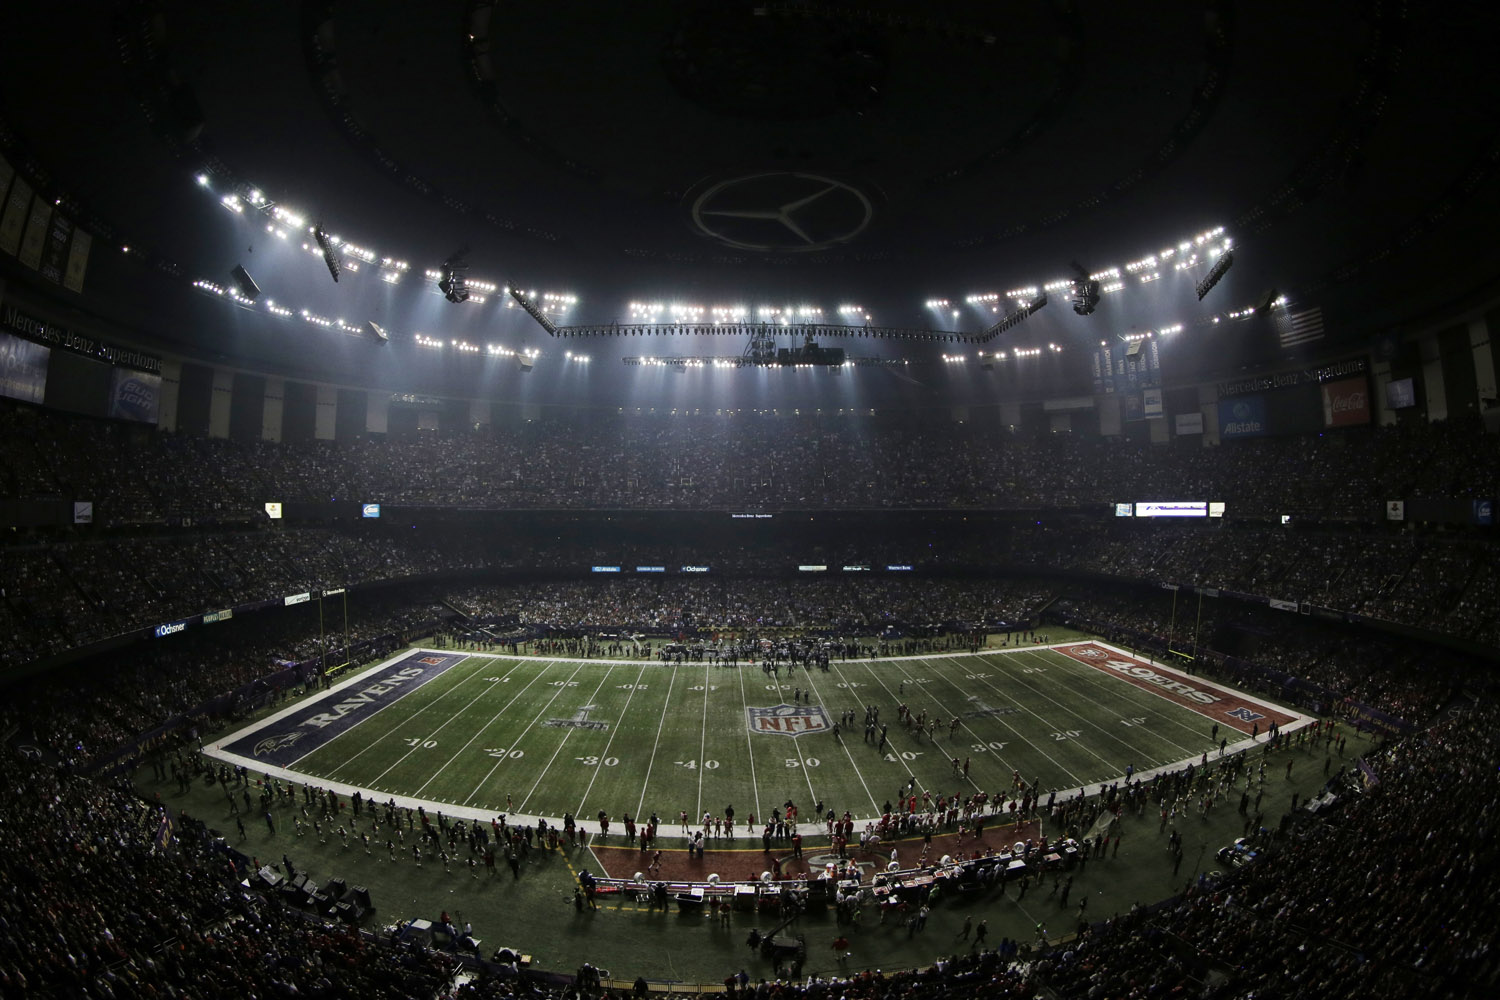 Super Bowl power outage traced to fault in device meant to prevent